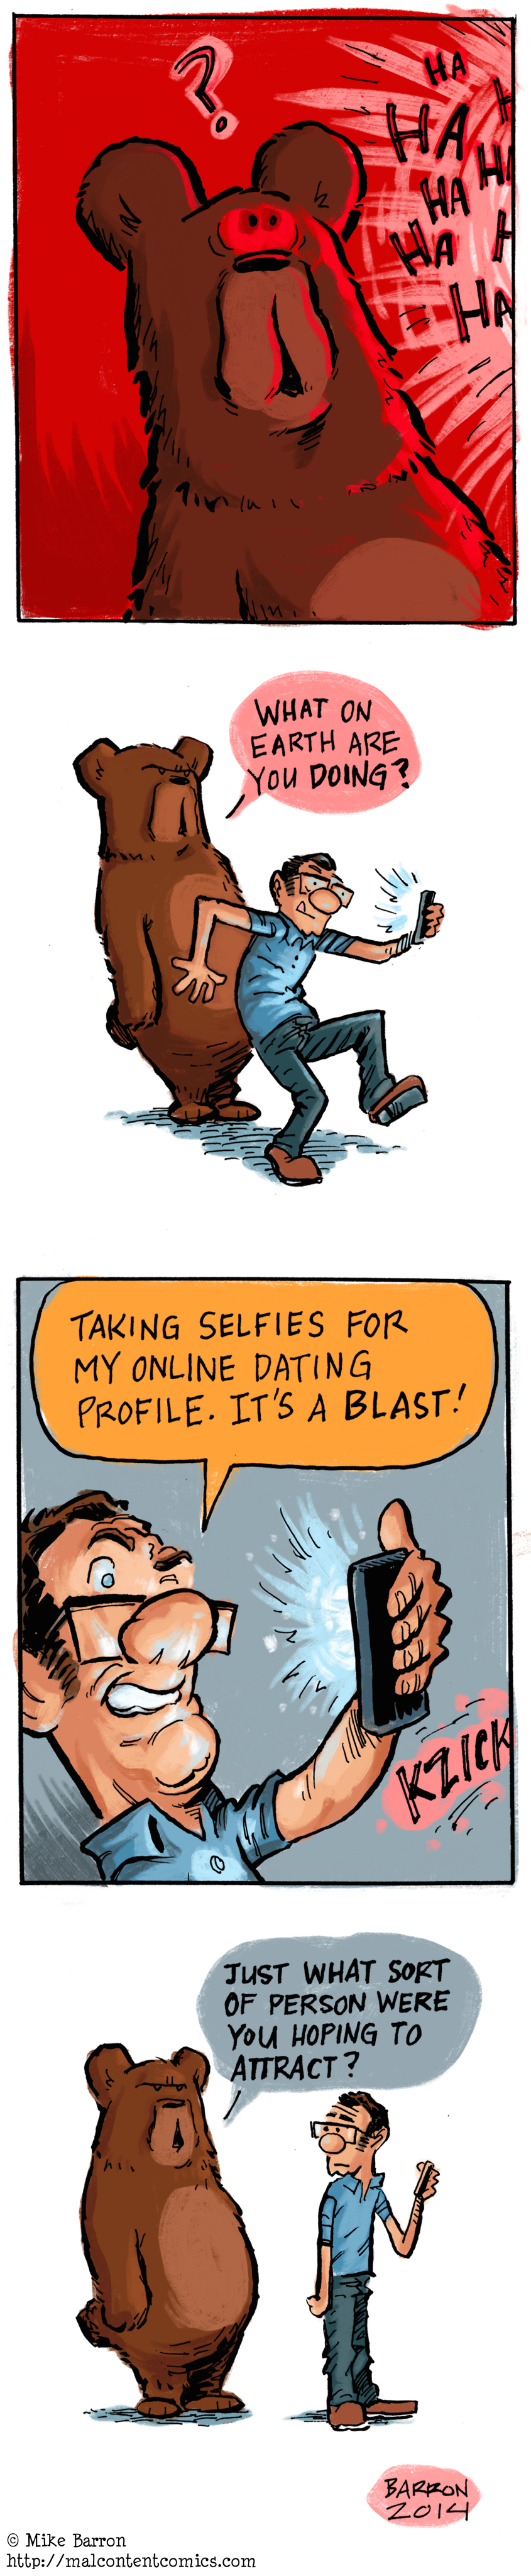 Malcontent-Strip-160-Selfies-Online.jpg